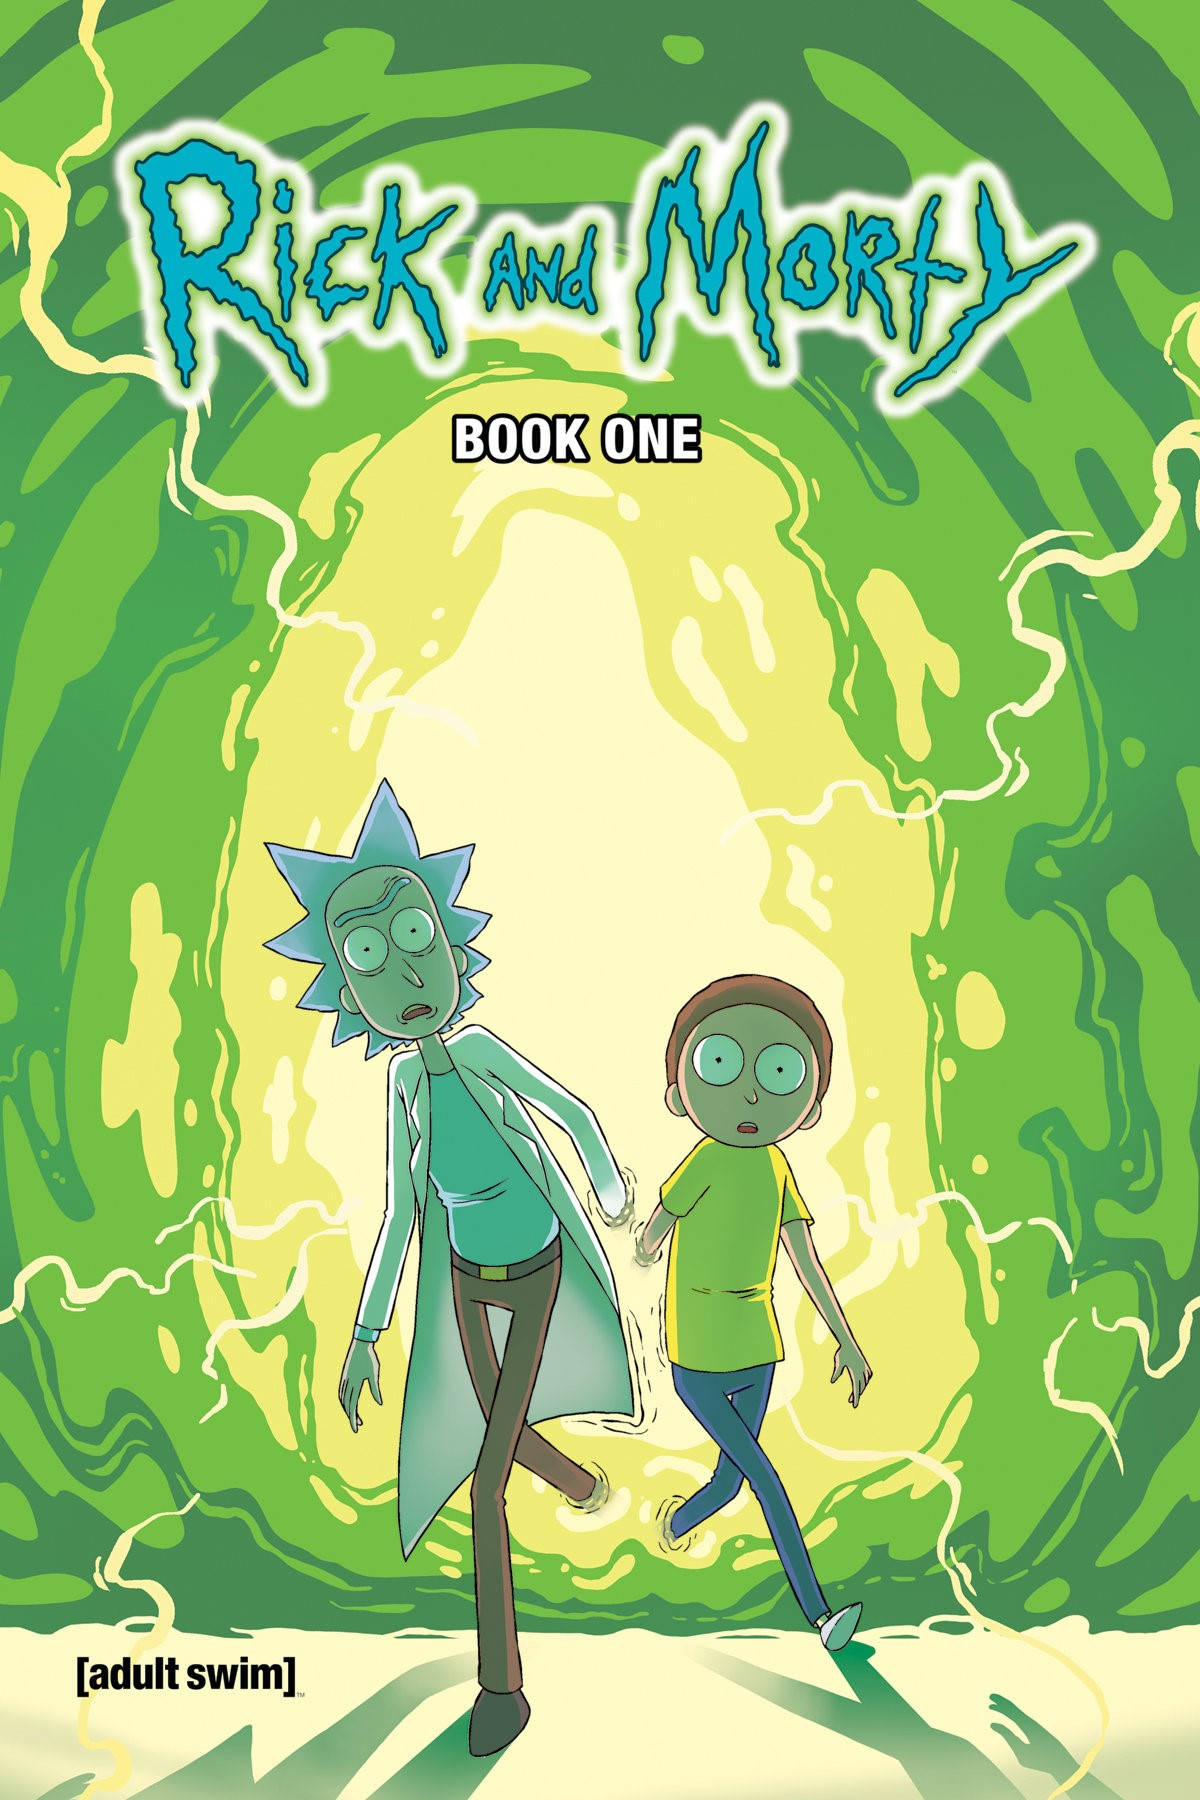 Rick and Morty™ Hardcover Book One  Collects issues #1-10! Cover by CJ Cannon and Ryan Hill